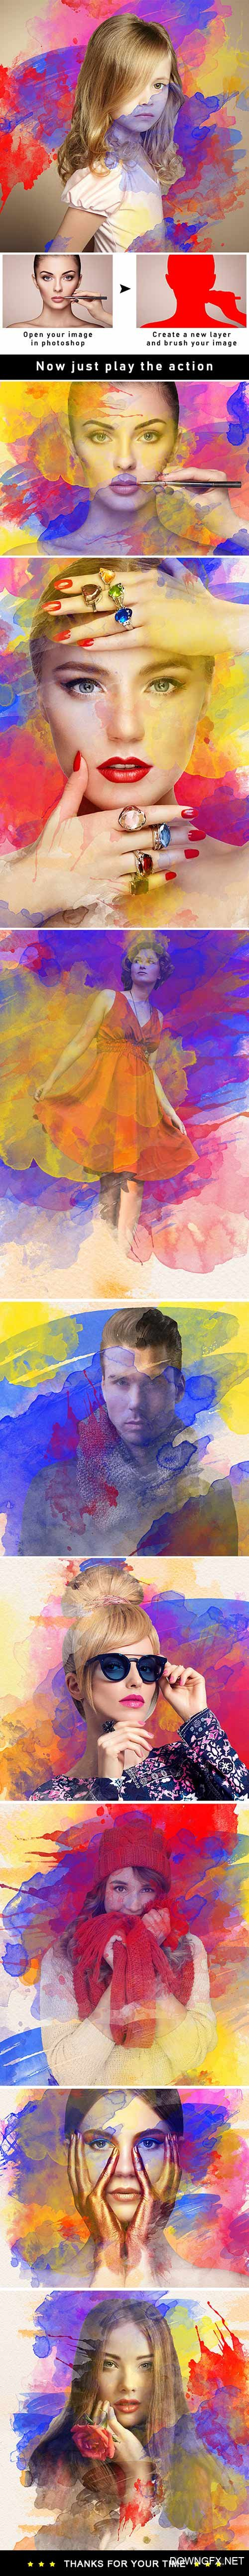 GraphicRiver - Water Color Splash Photoshop Action 22344254